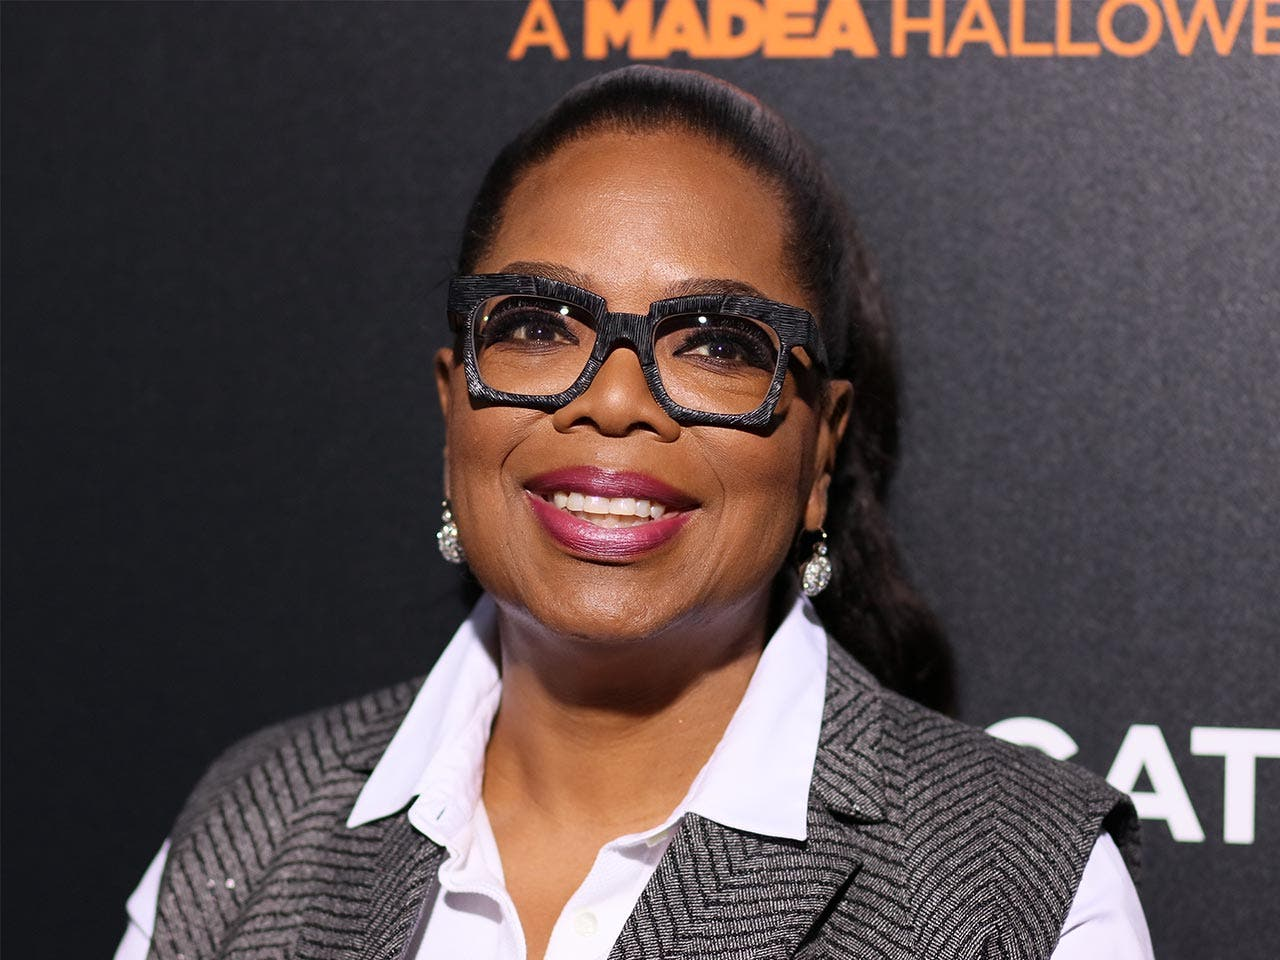 Oprah Winfrey | JB Lacroix/Getty Images